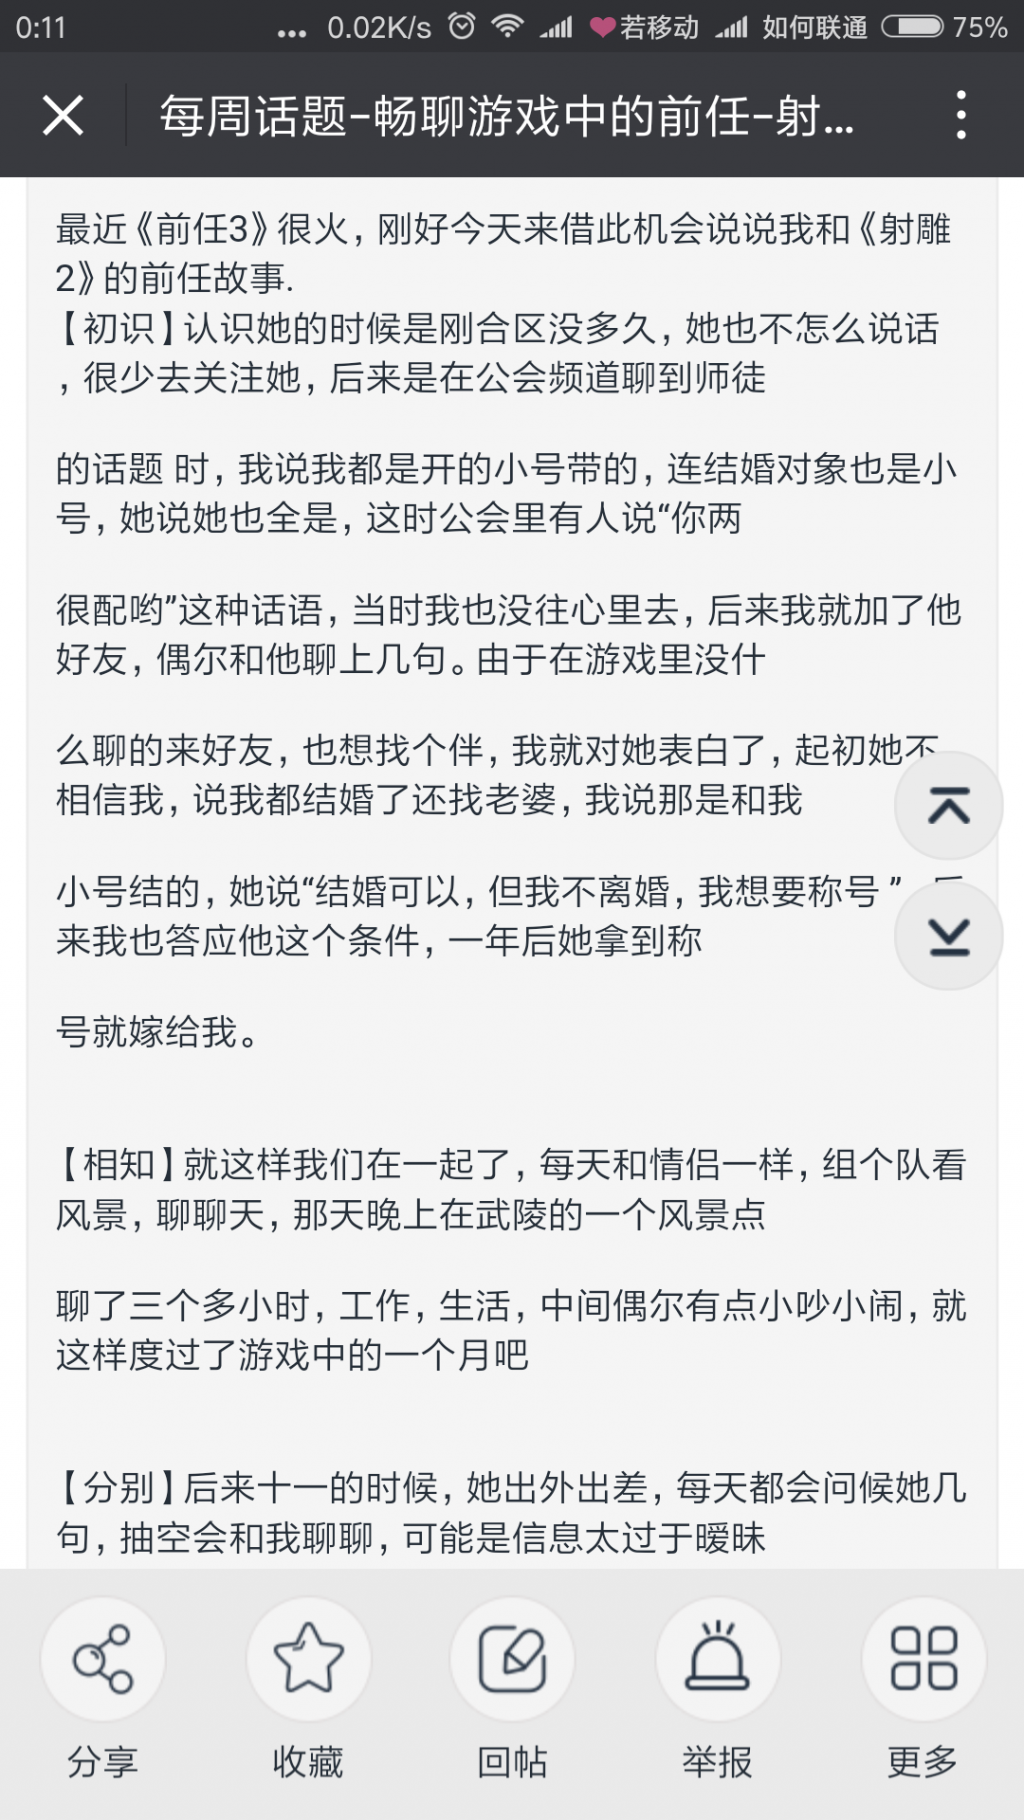 Screenshot_2018-01-10-00-11-41-627_com.tencent.mm.png